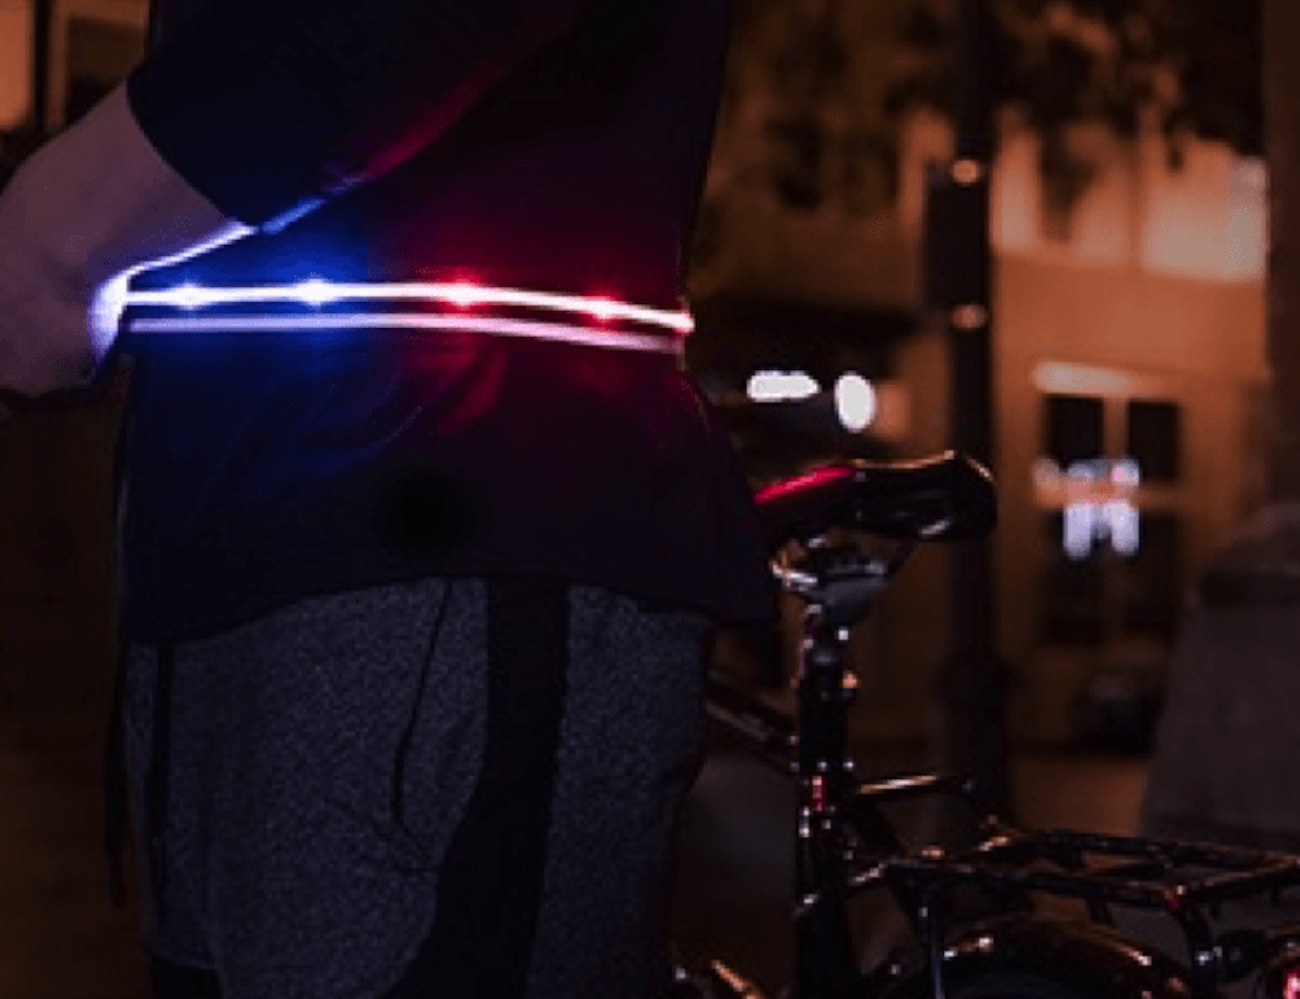 LumaGlo Crossbelt Wearable Illumination Belt